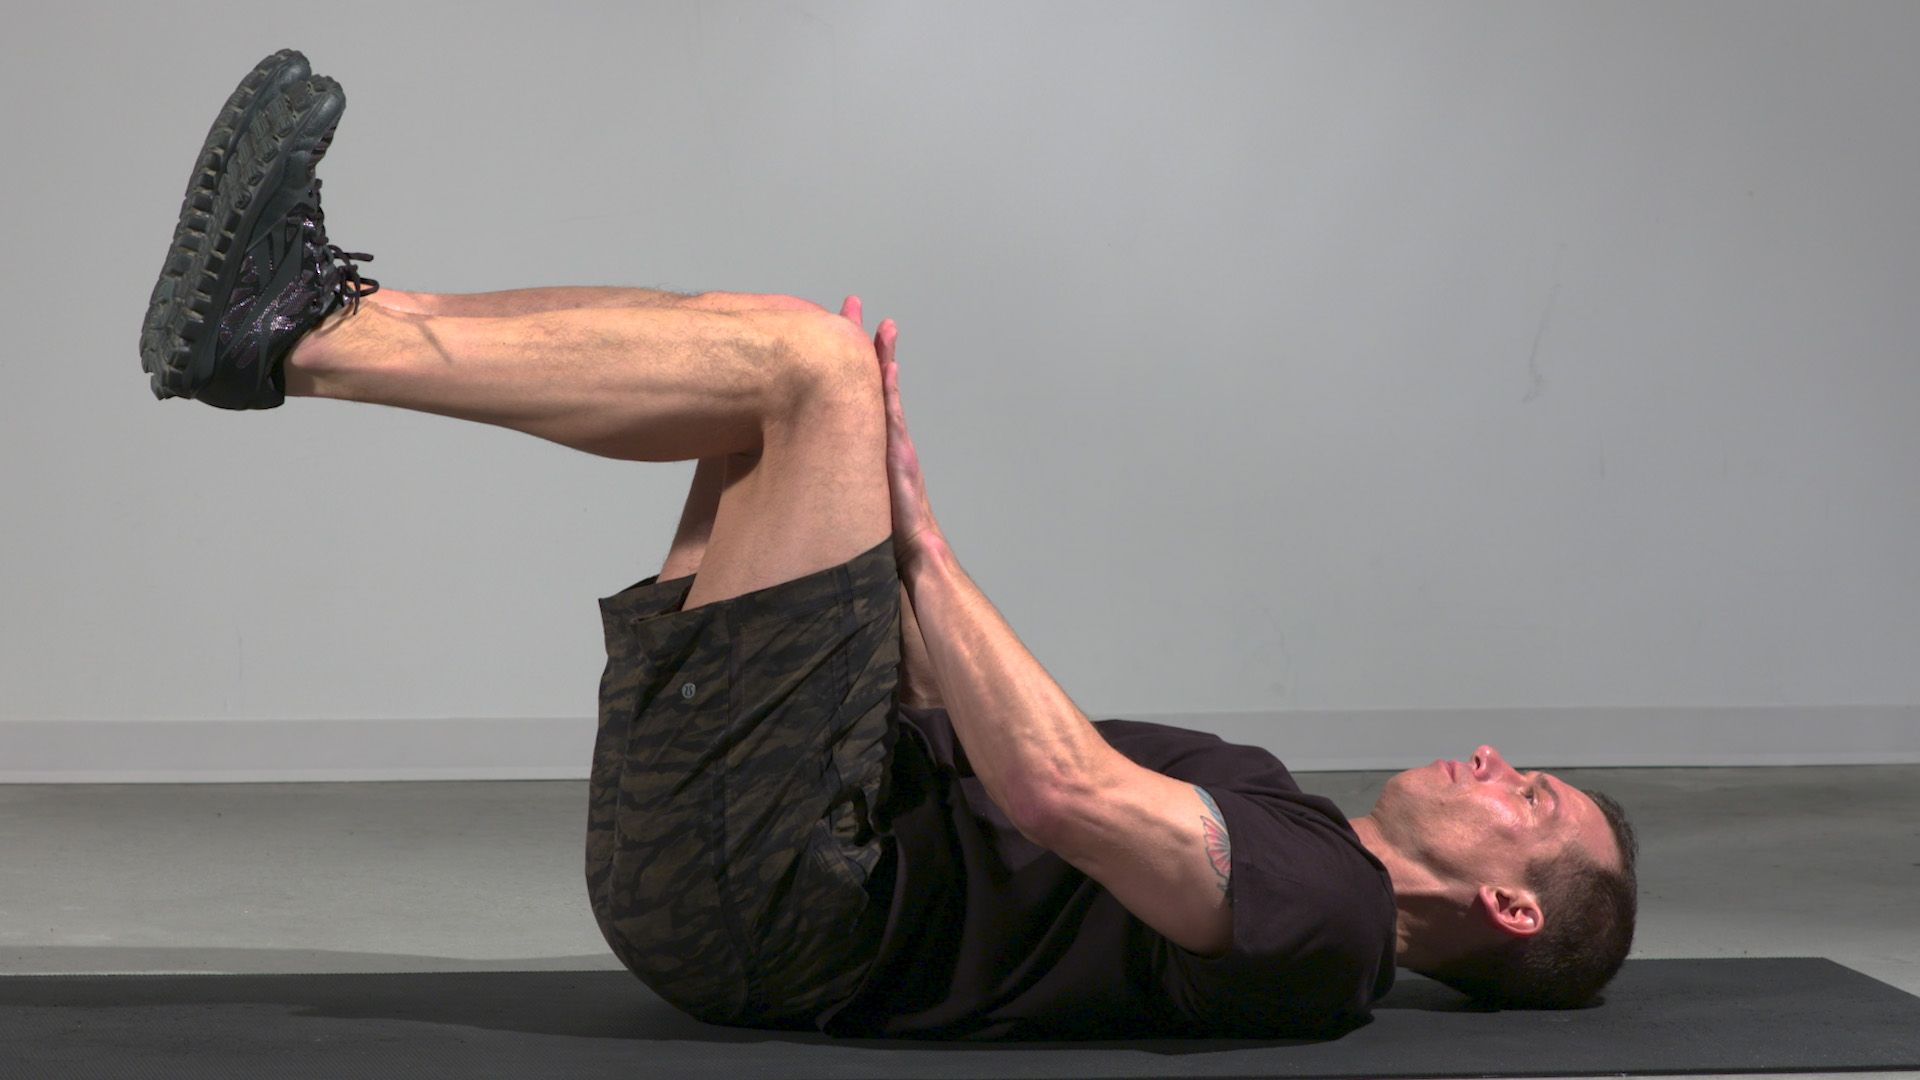 Sculpt Your Abs in Just 20 Minutes with This Bodyweight Circuit